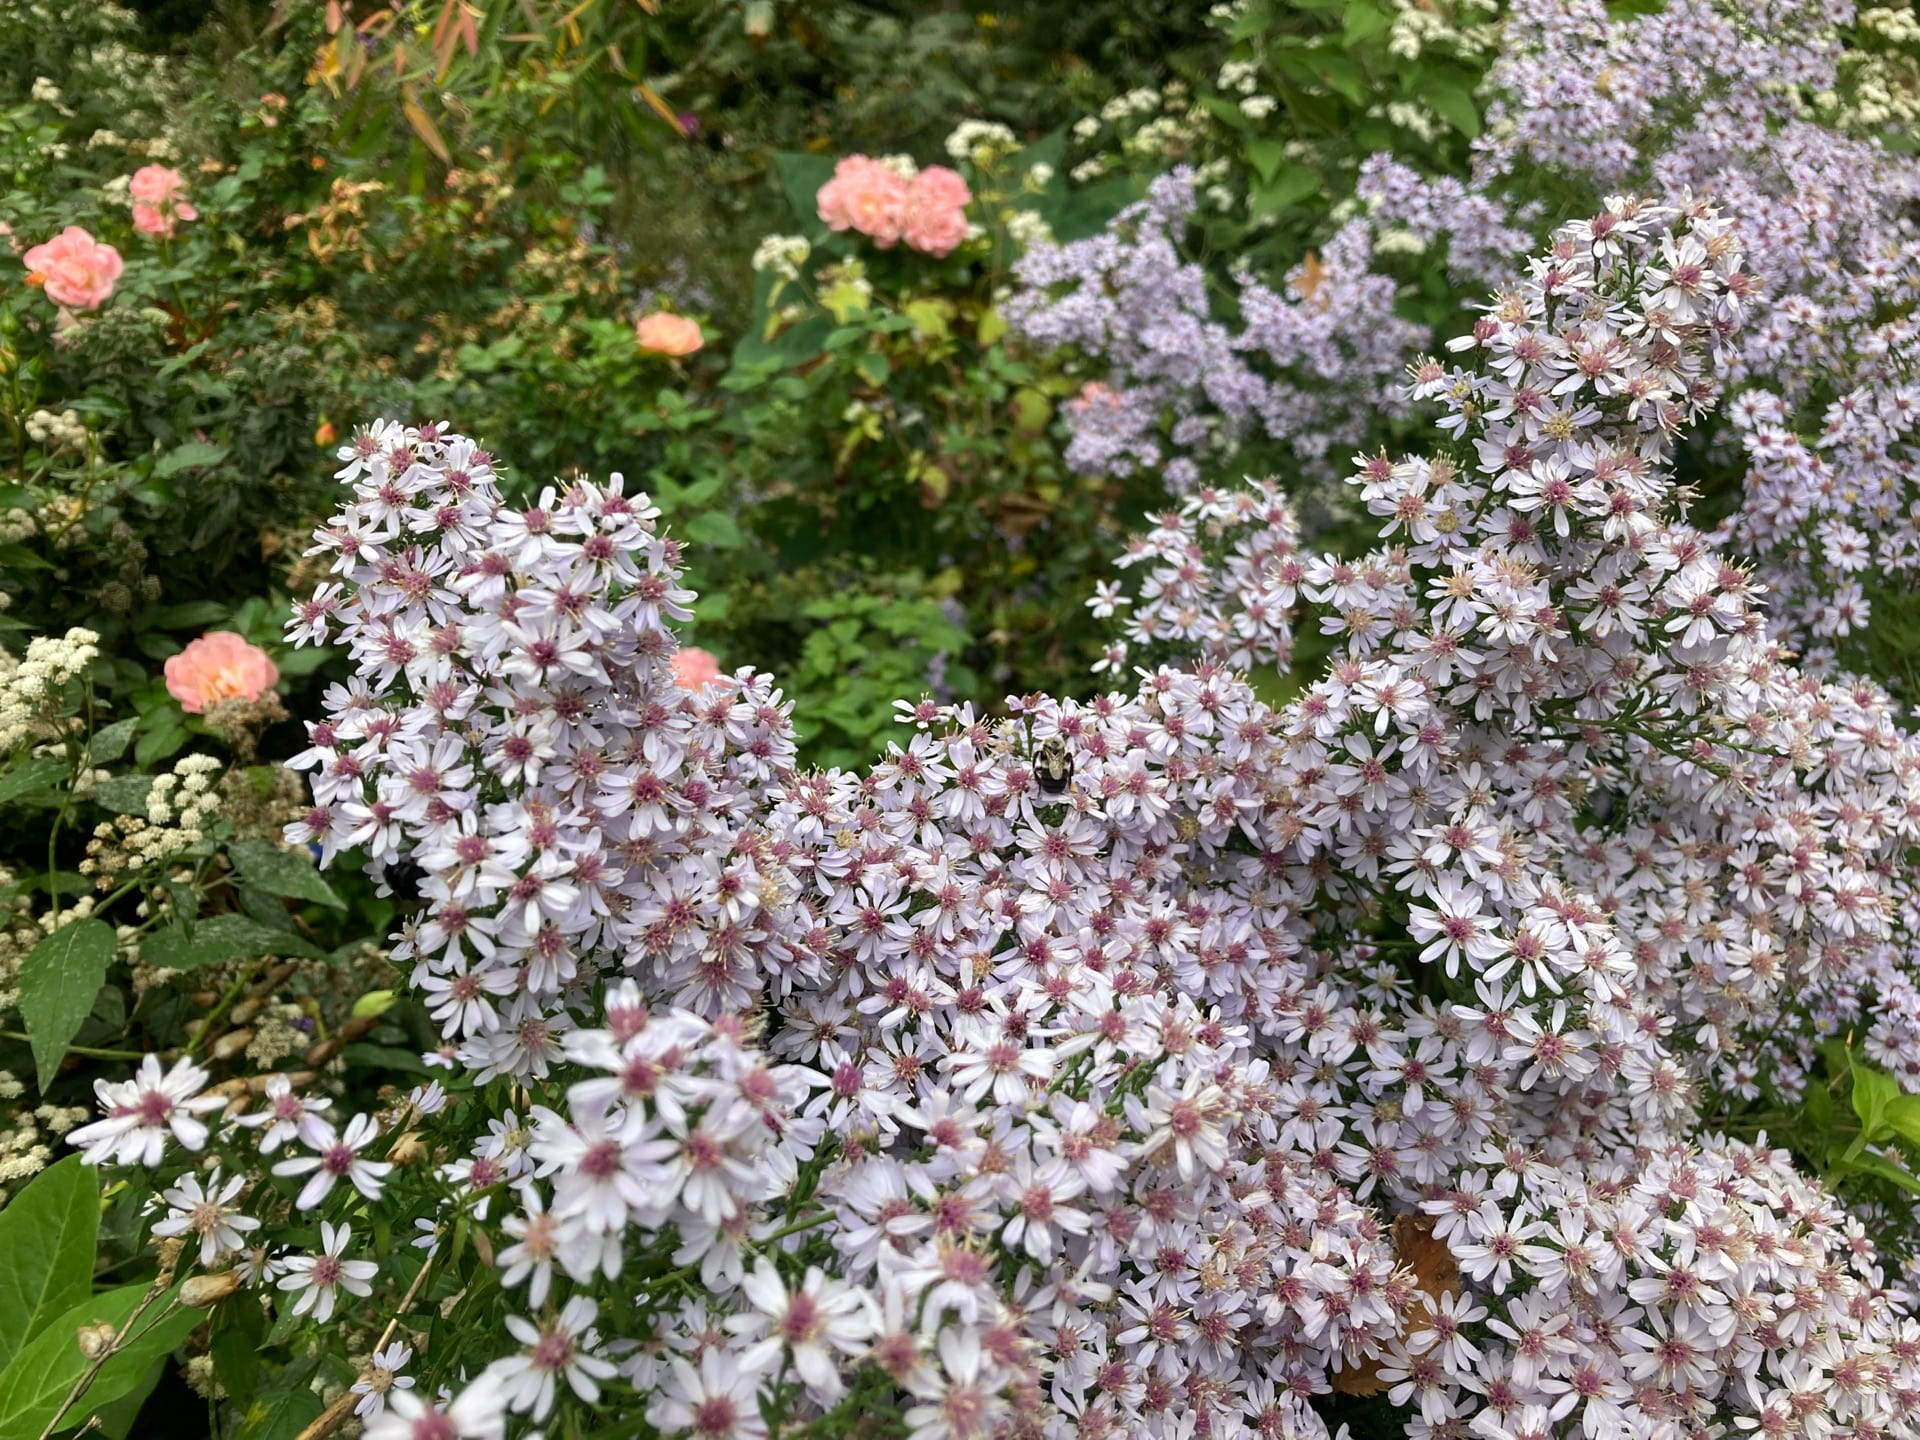 Aster cordifolius, with a profusion of tiny blooms, is supported by Rosa 'Meiggilli' PEACH DRIFT.